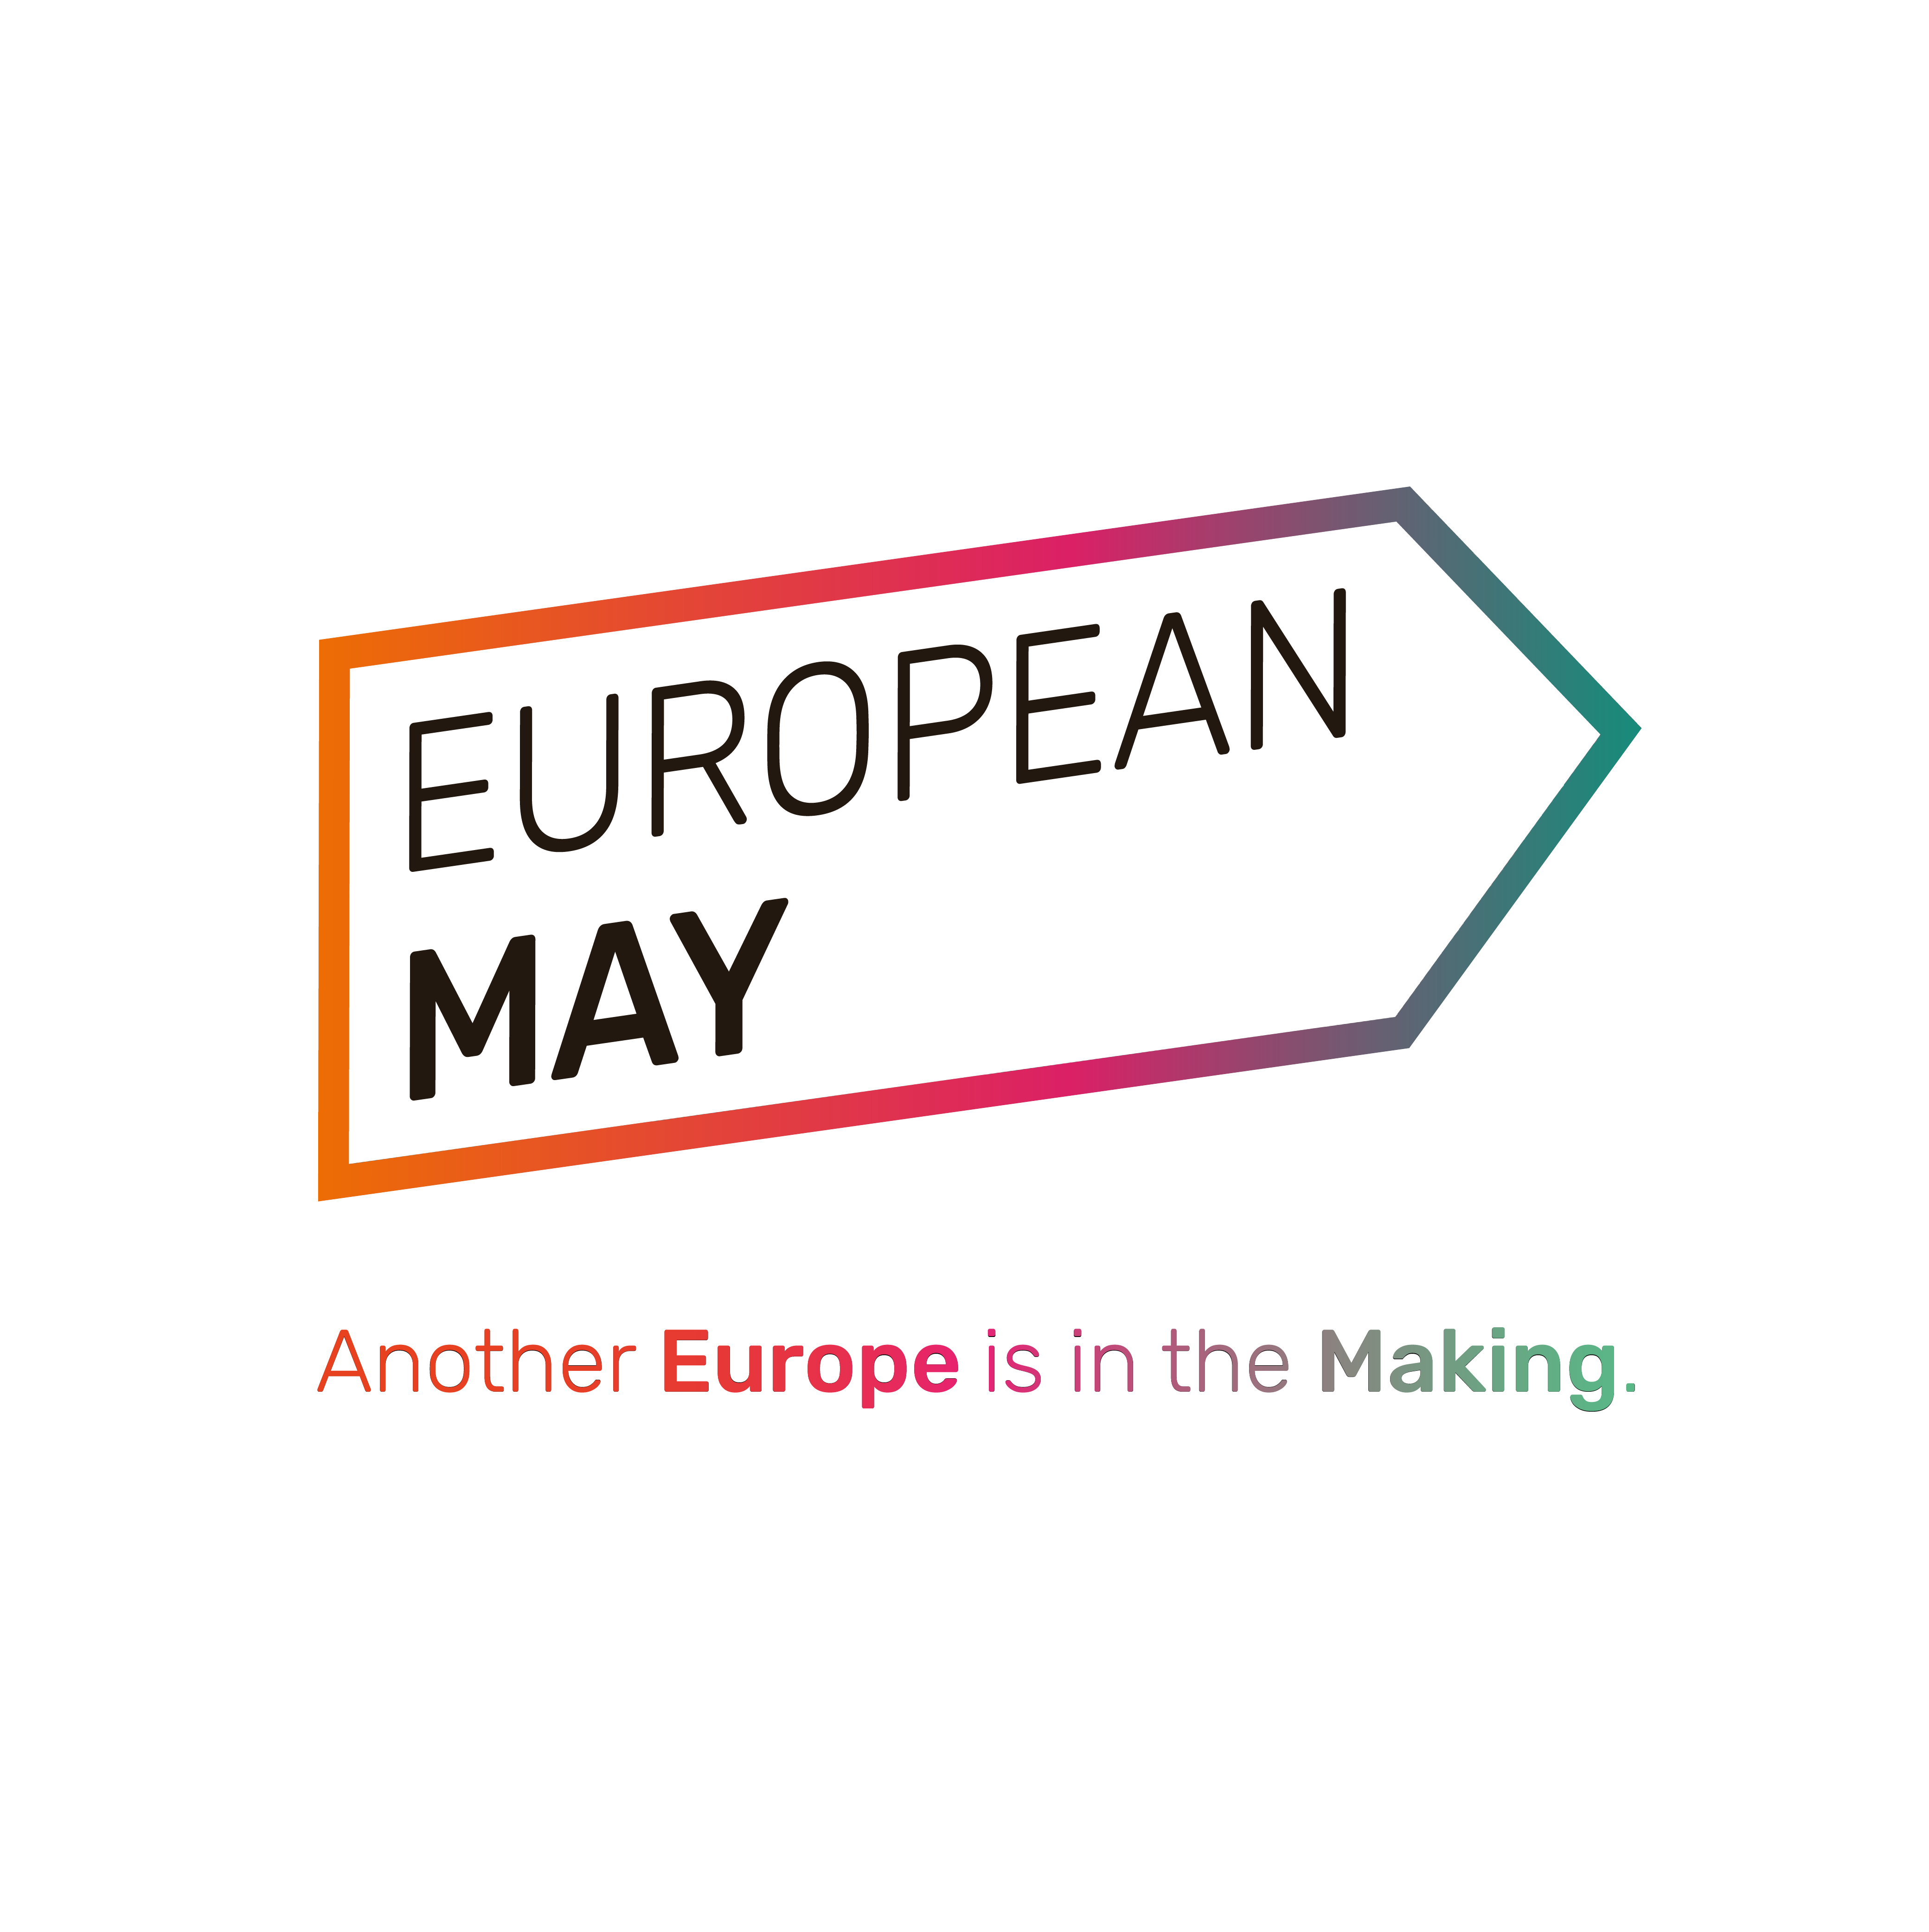 European May campaign ahead of the European Elections 2019